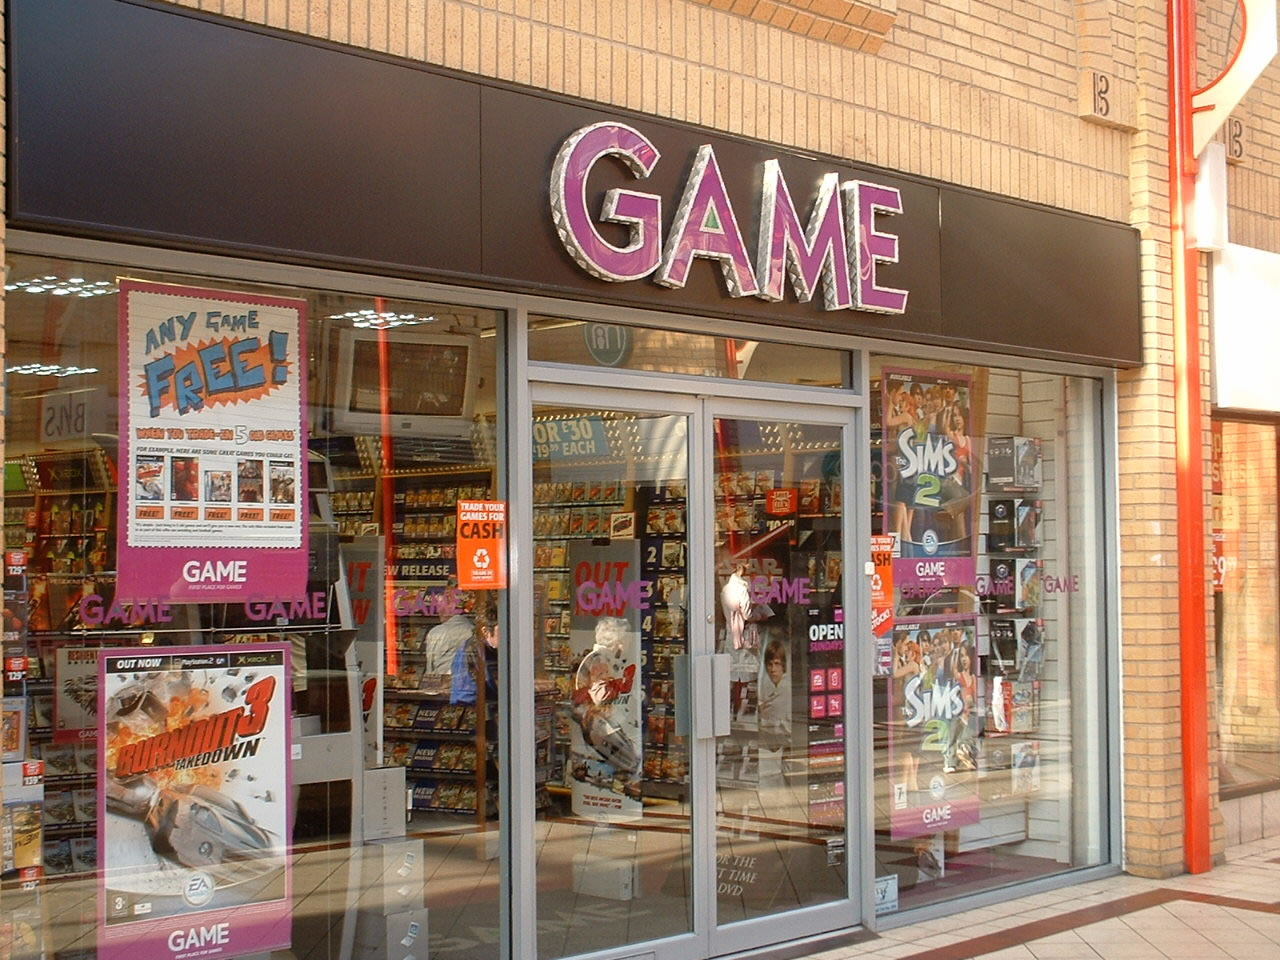 GAME store in the UK